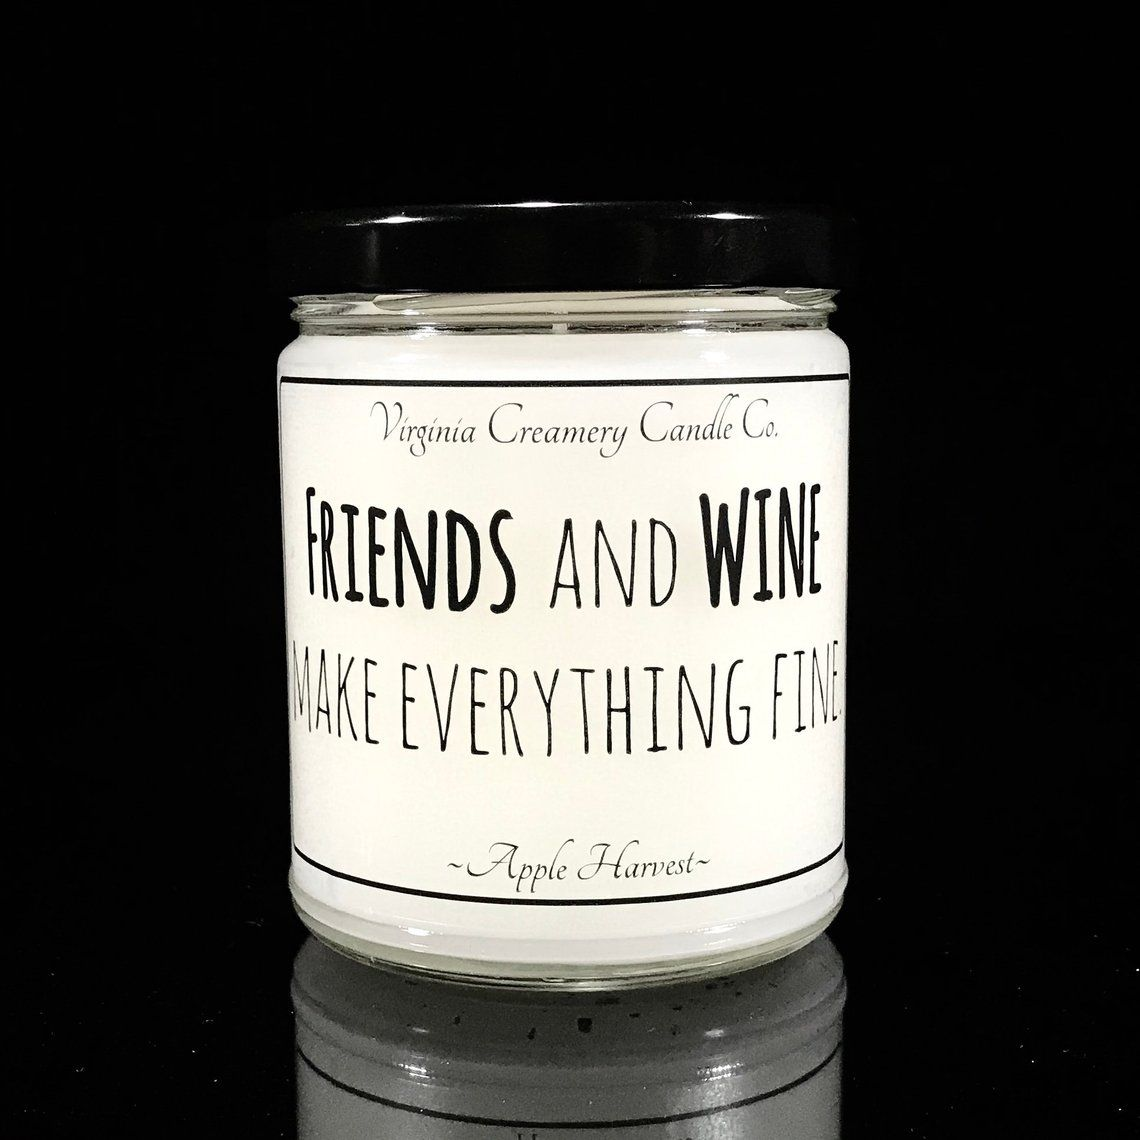 Best friend gift soy good friends candle good friend gift